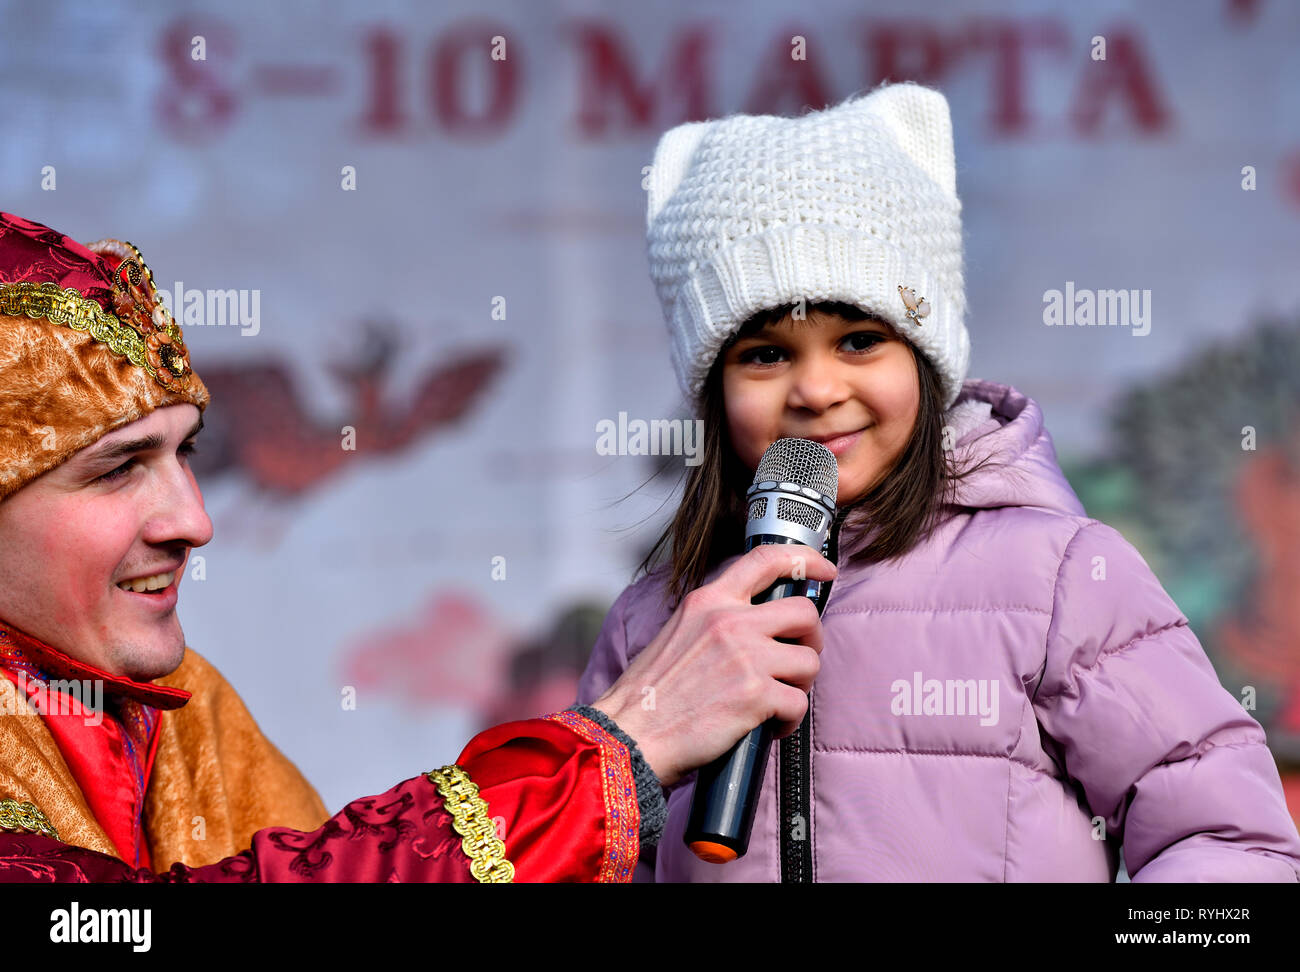 The girl and the clown. Farewell to winter. - Stock Image